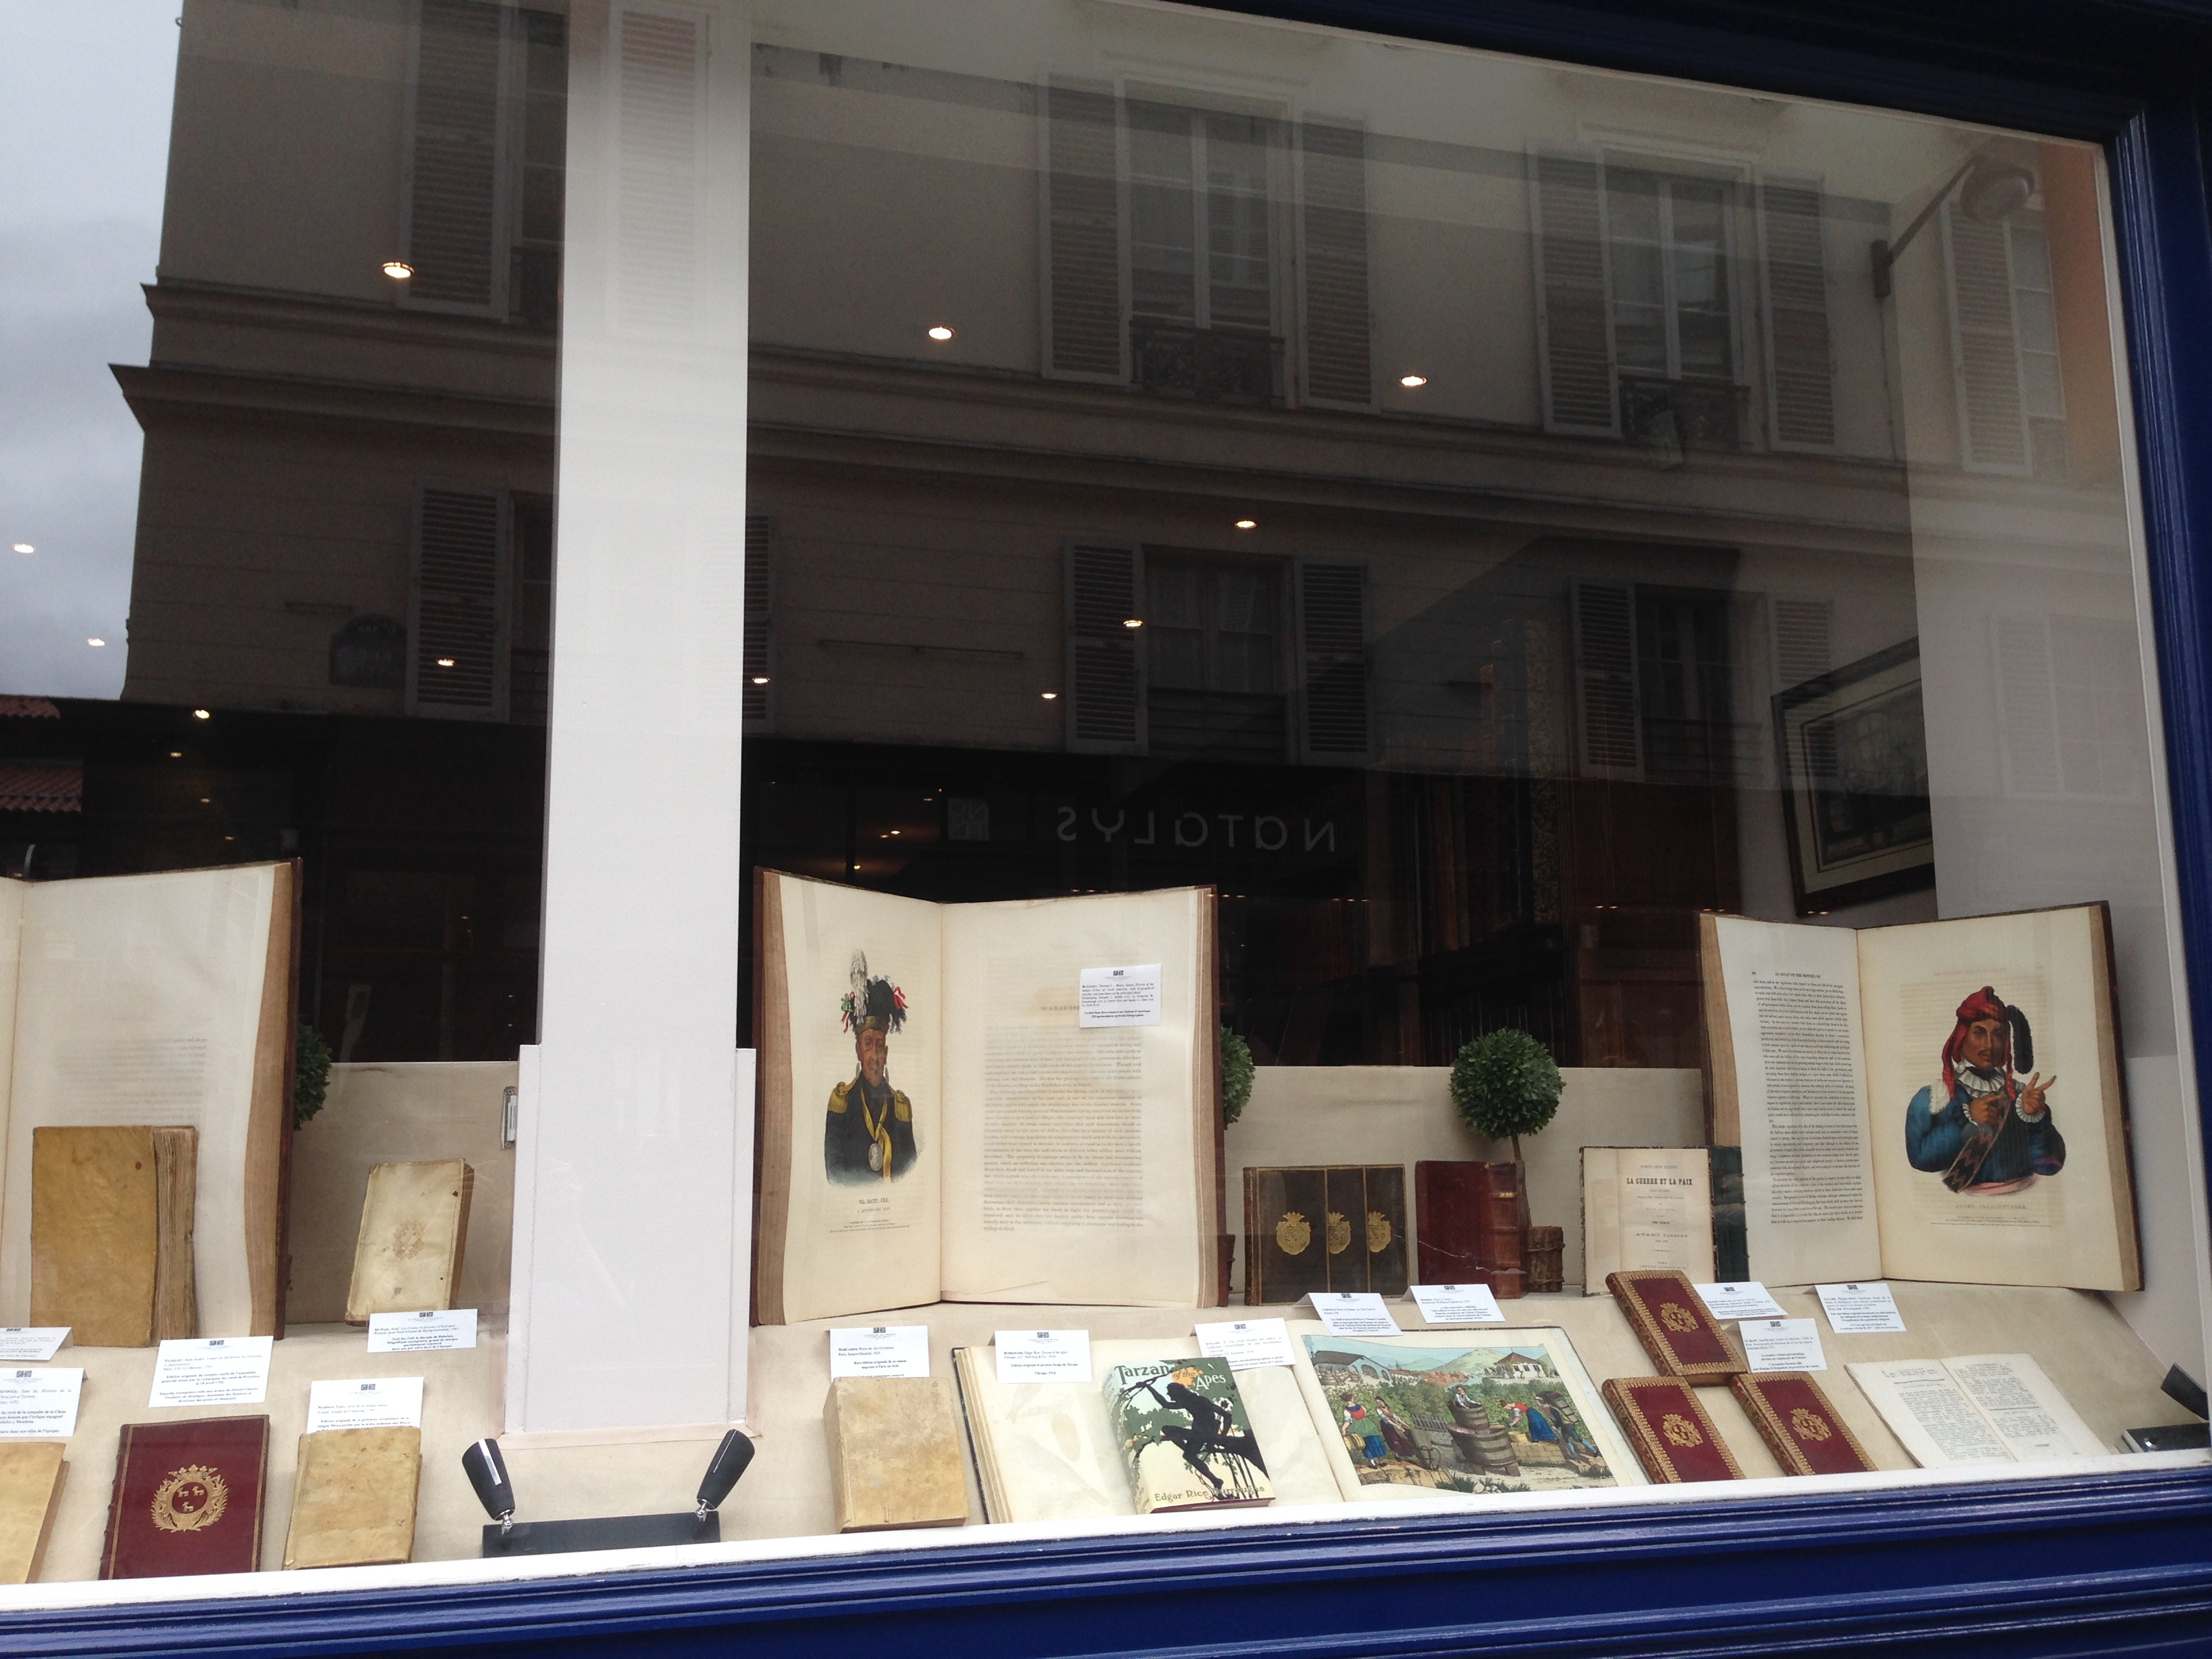 Our window of precious books this week